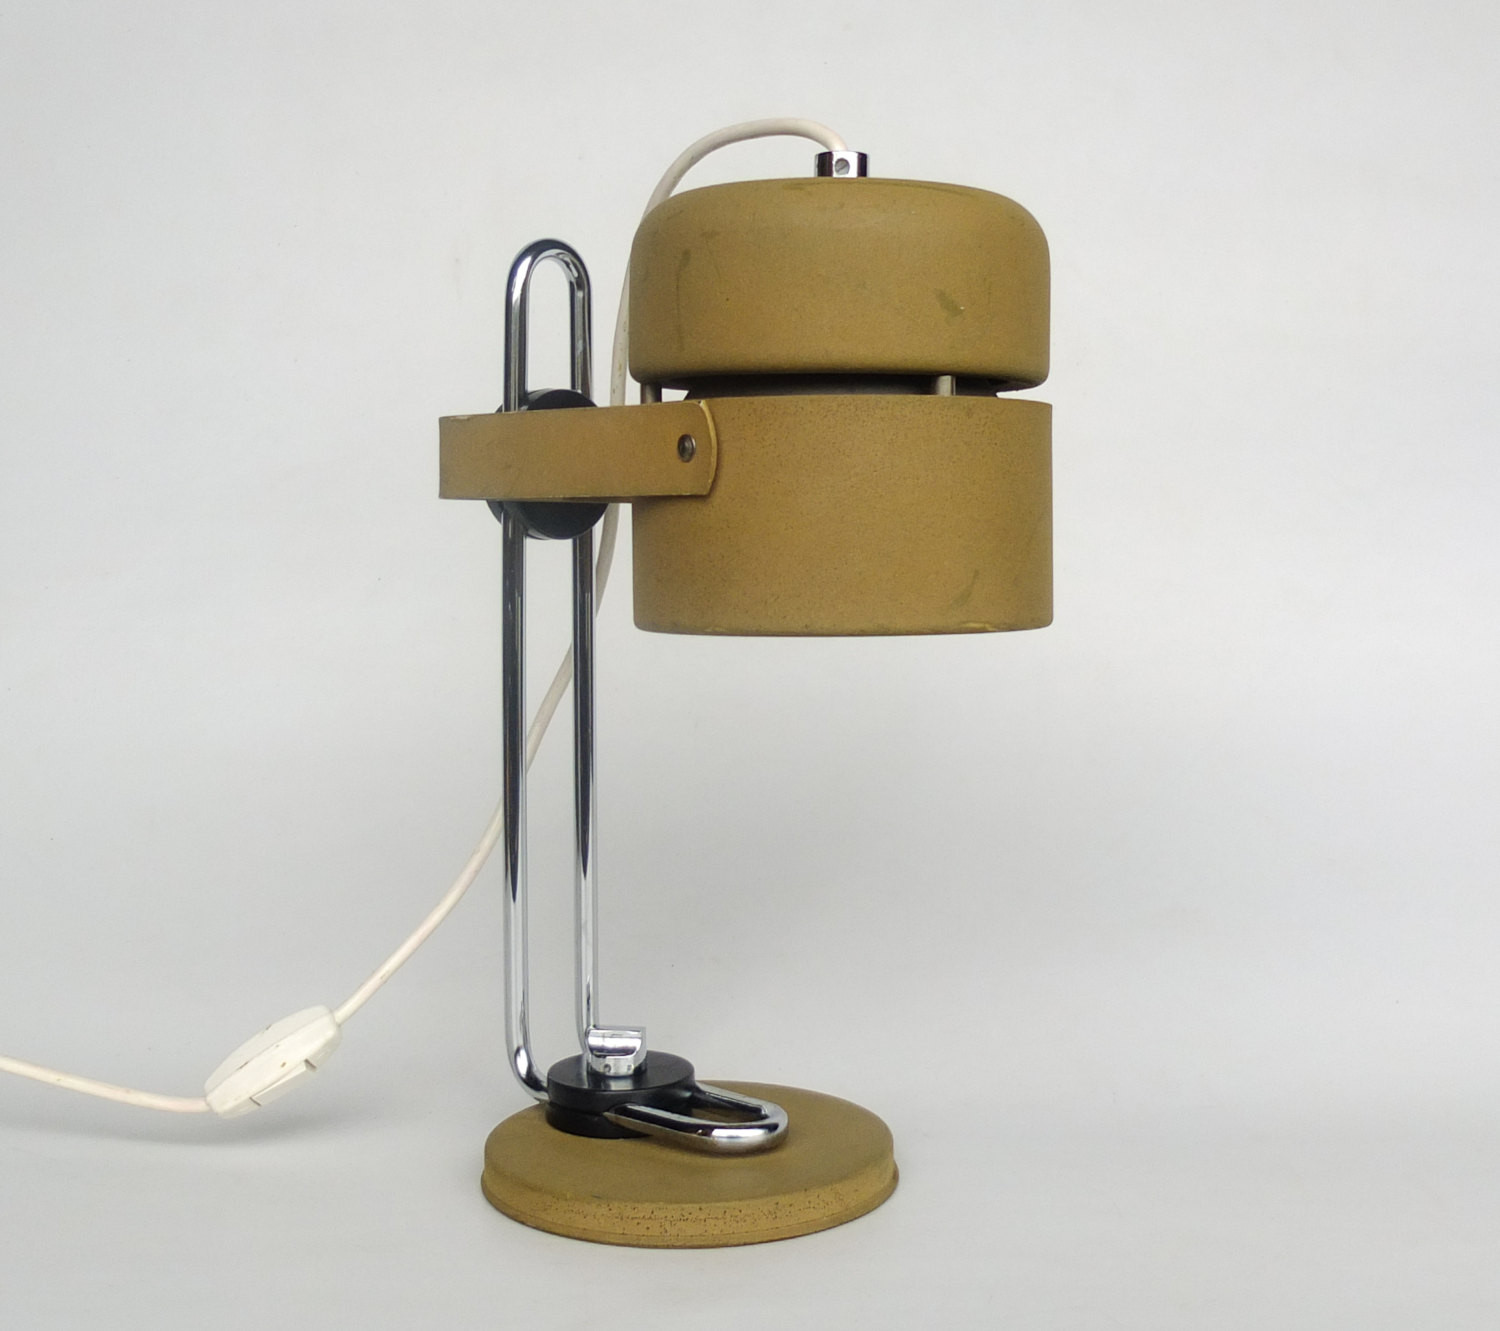 Best ideas about Industrial Desk Lamp . Save or Pin Vintage Industrial Desk Lamp fice Desk Lamp Adjustable Now.